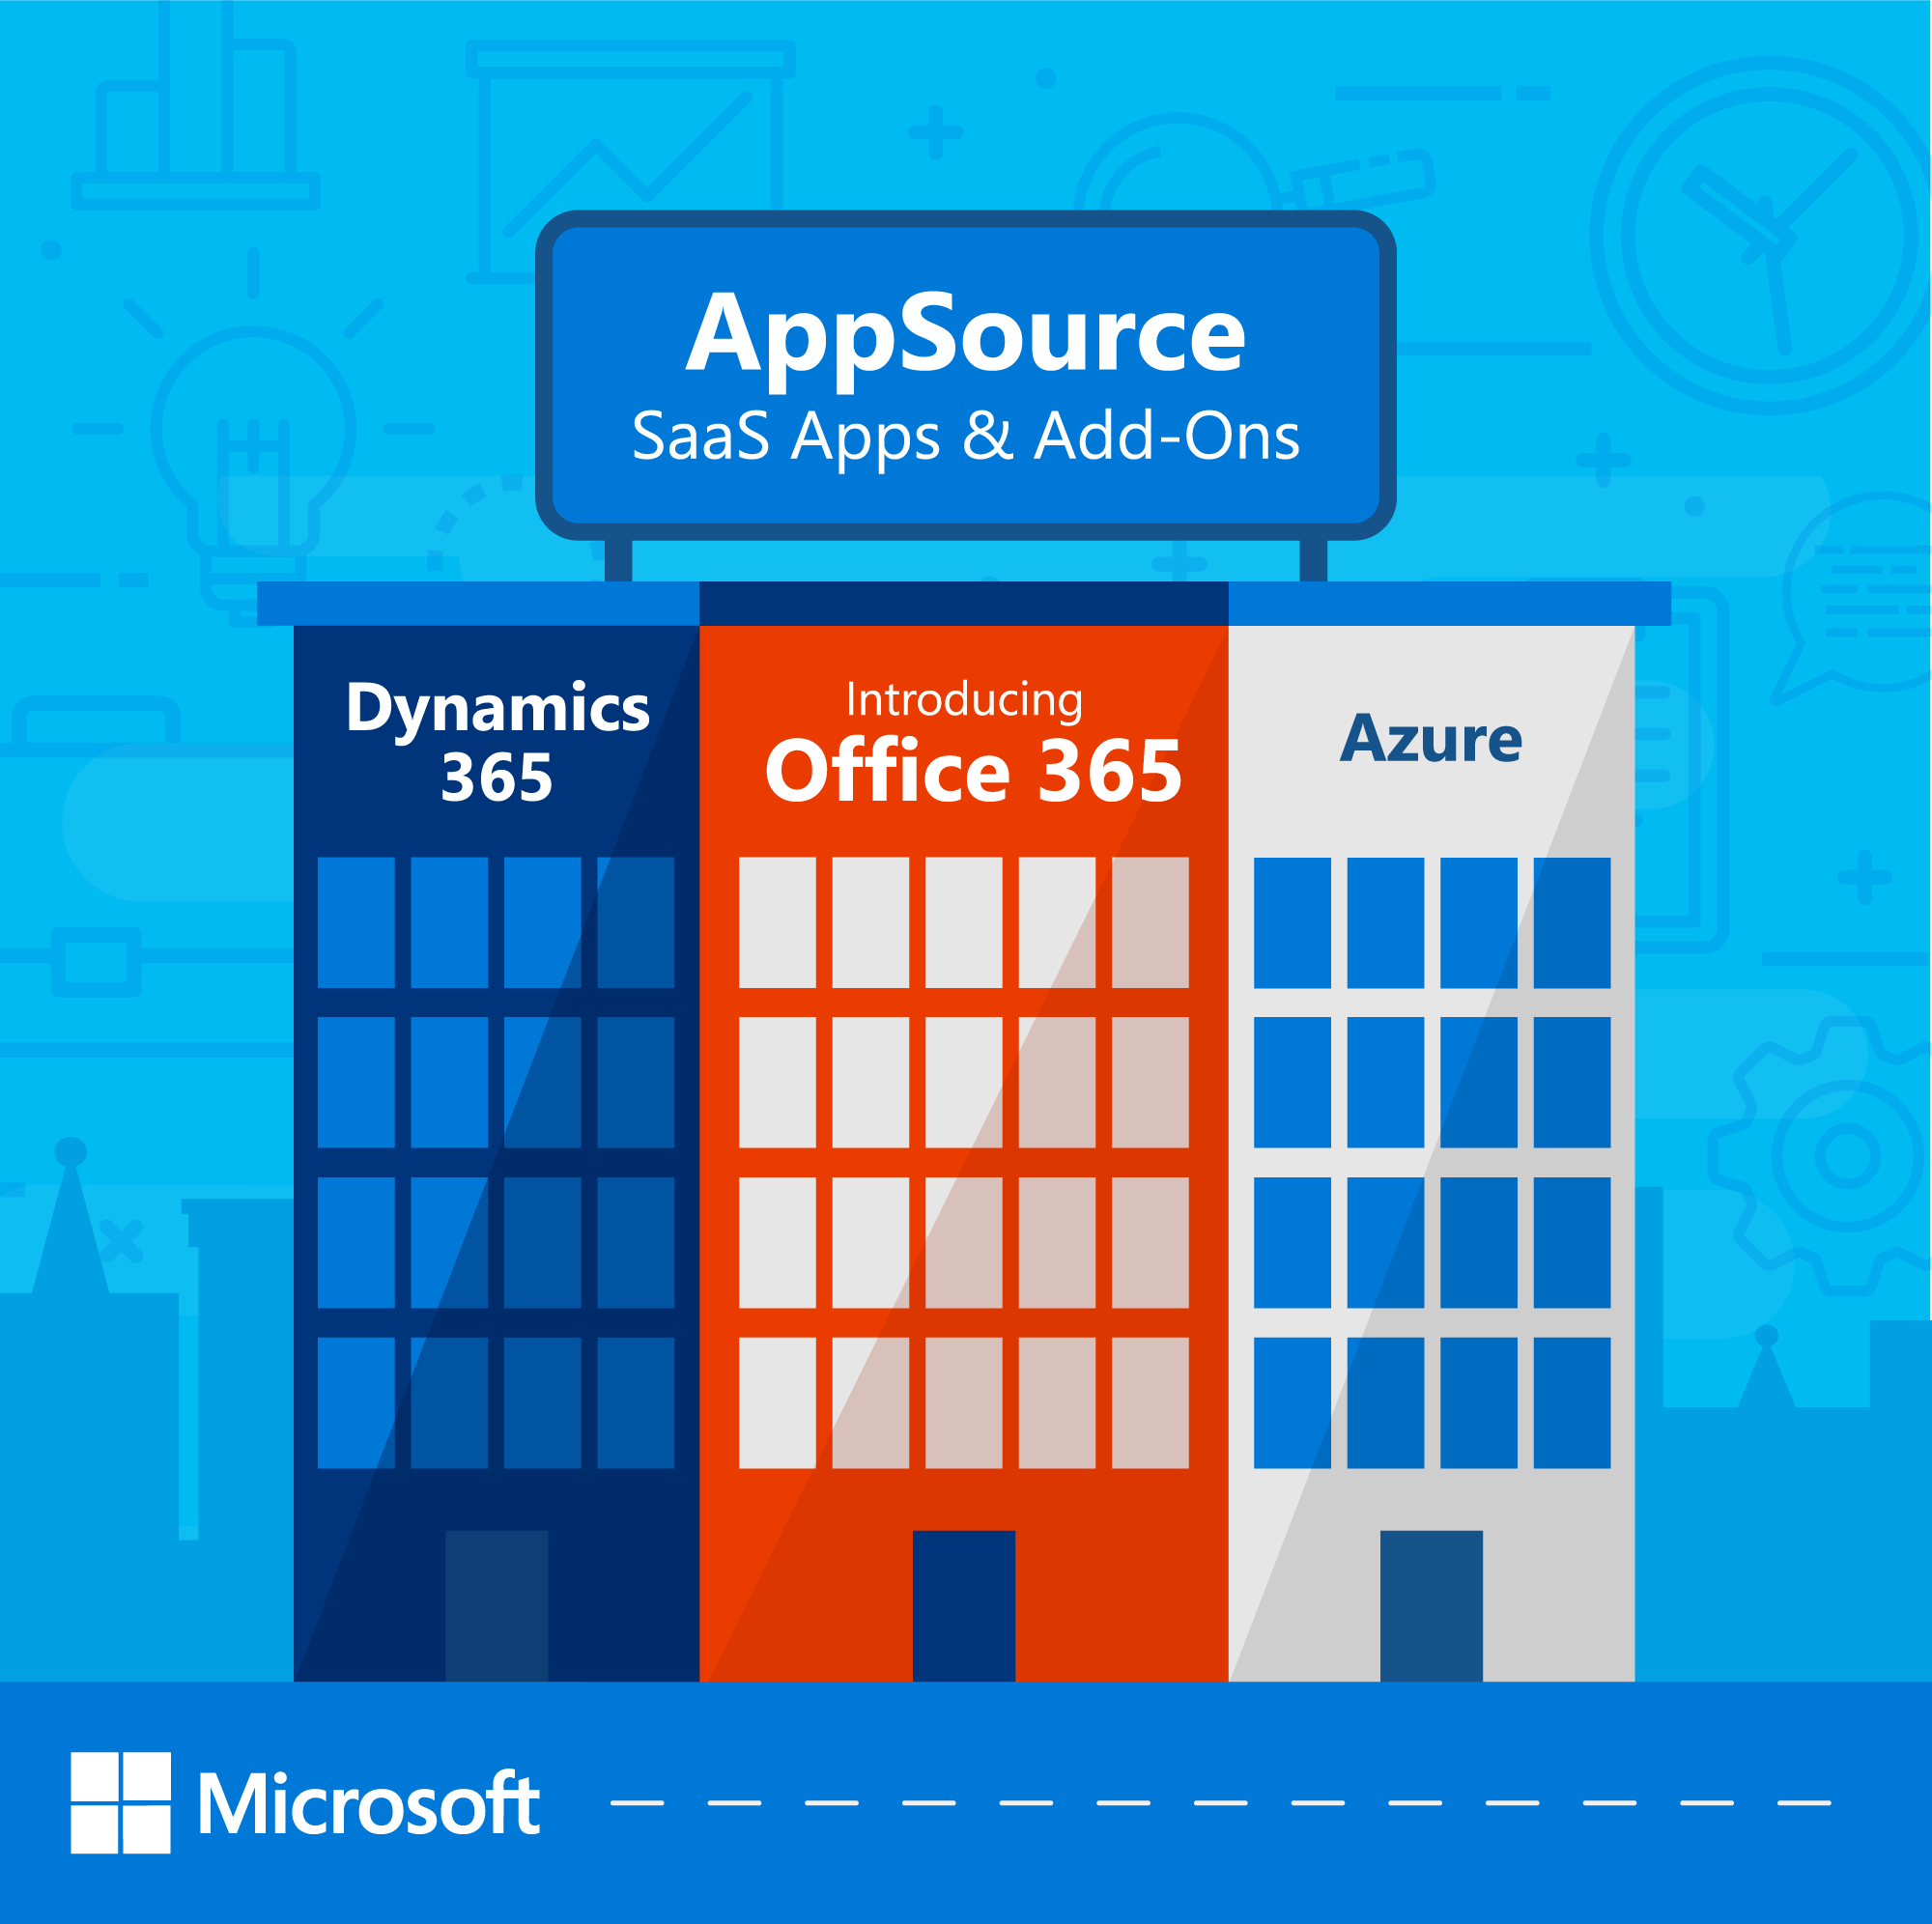 Microsoft Azure Marketplace listing for Dynamics CRM 365 integration listing